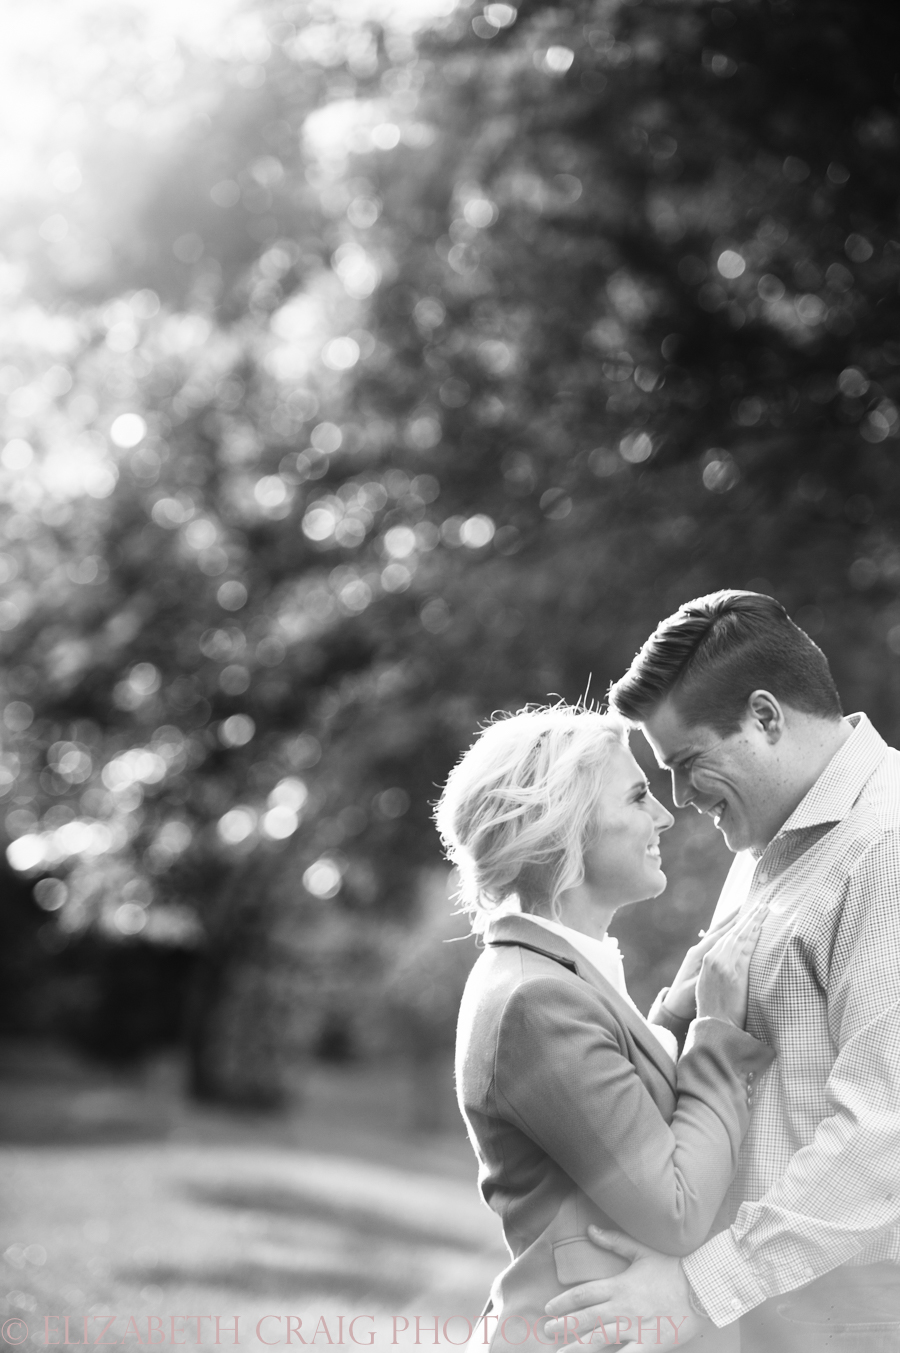 Pittsburgh North Side Engagement Photography | Elizabeth Craig Photography-001